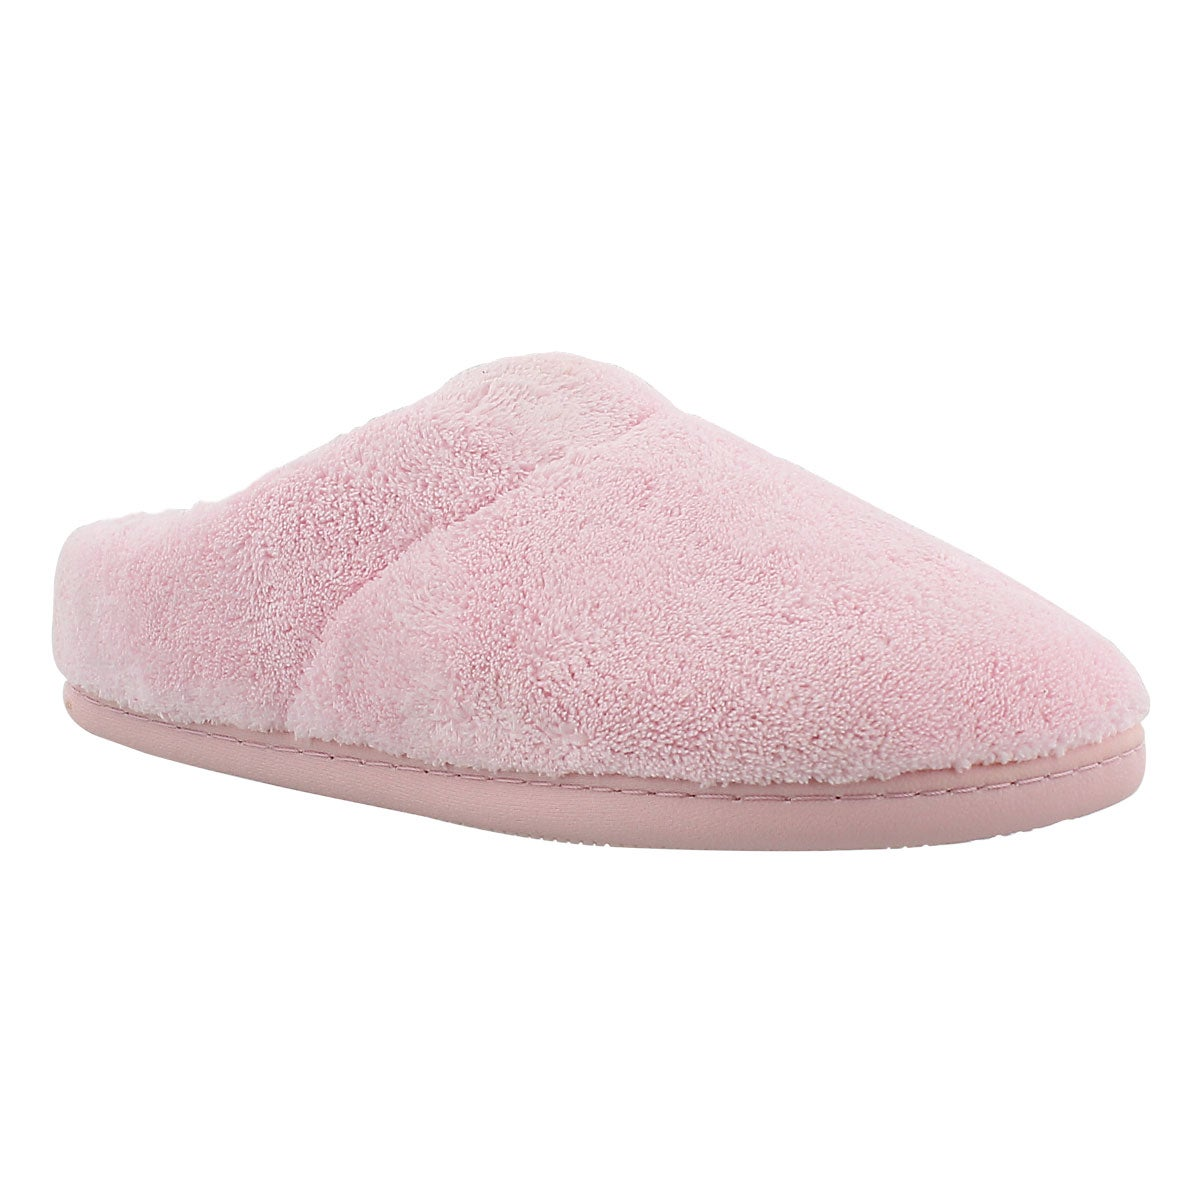 Lds Windsock pink open back slipper